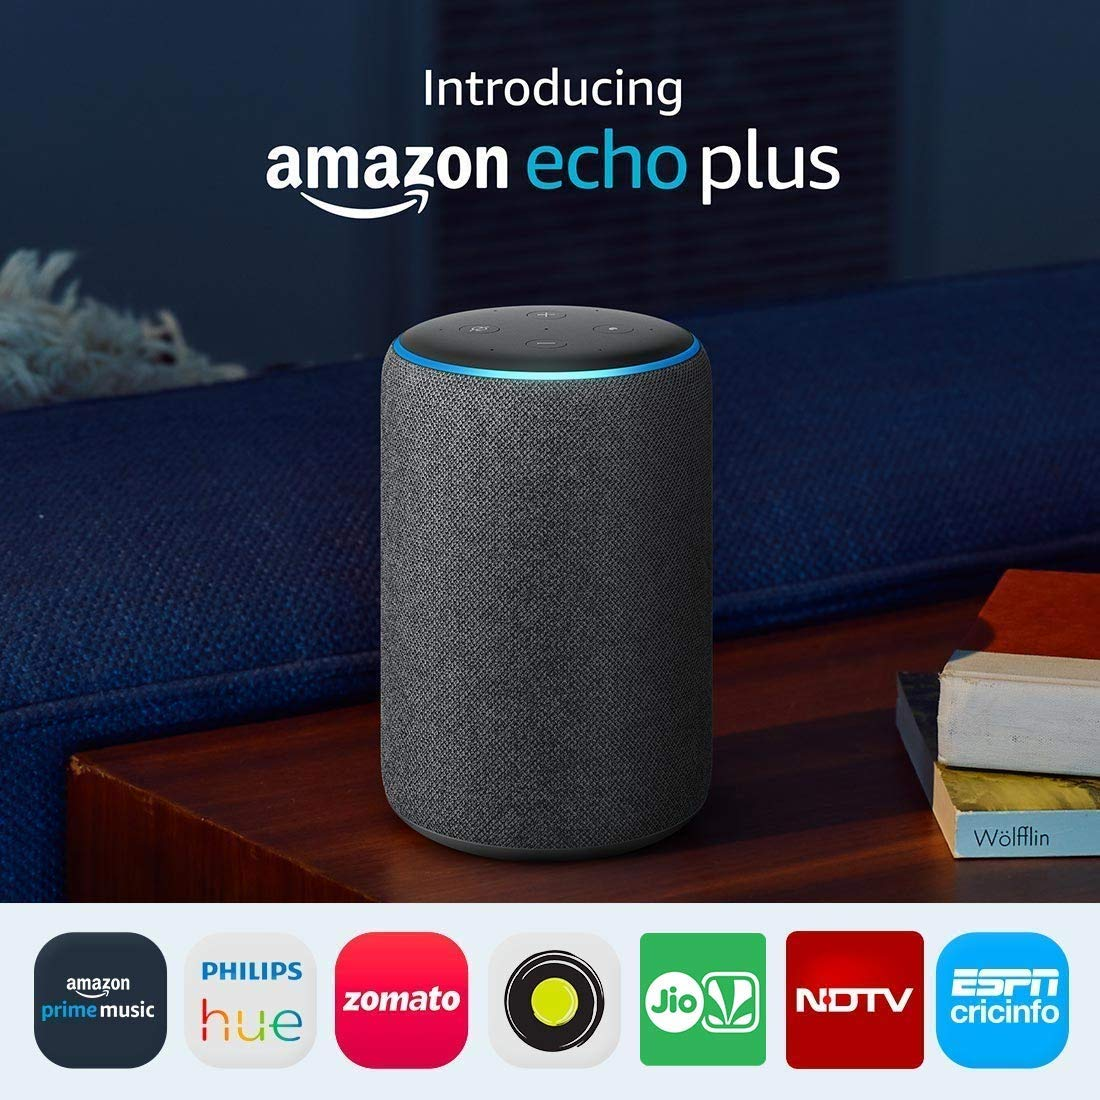 New Release Box Office Movie: Amazon New Release Echo Plus